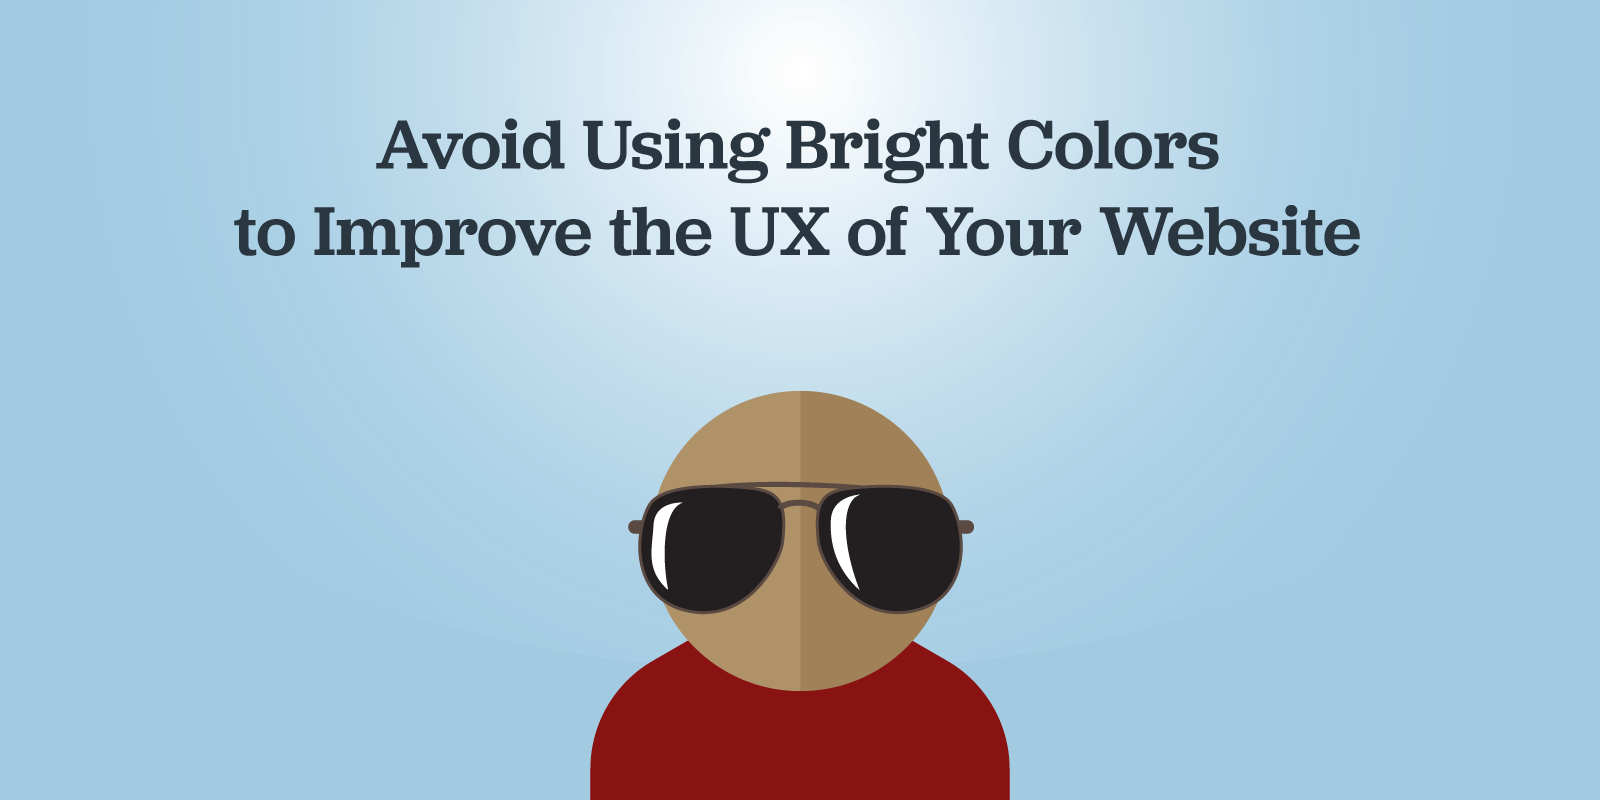 Avoid using bright colors to improve the UX of your website